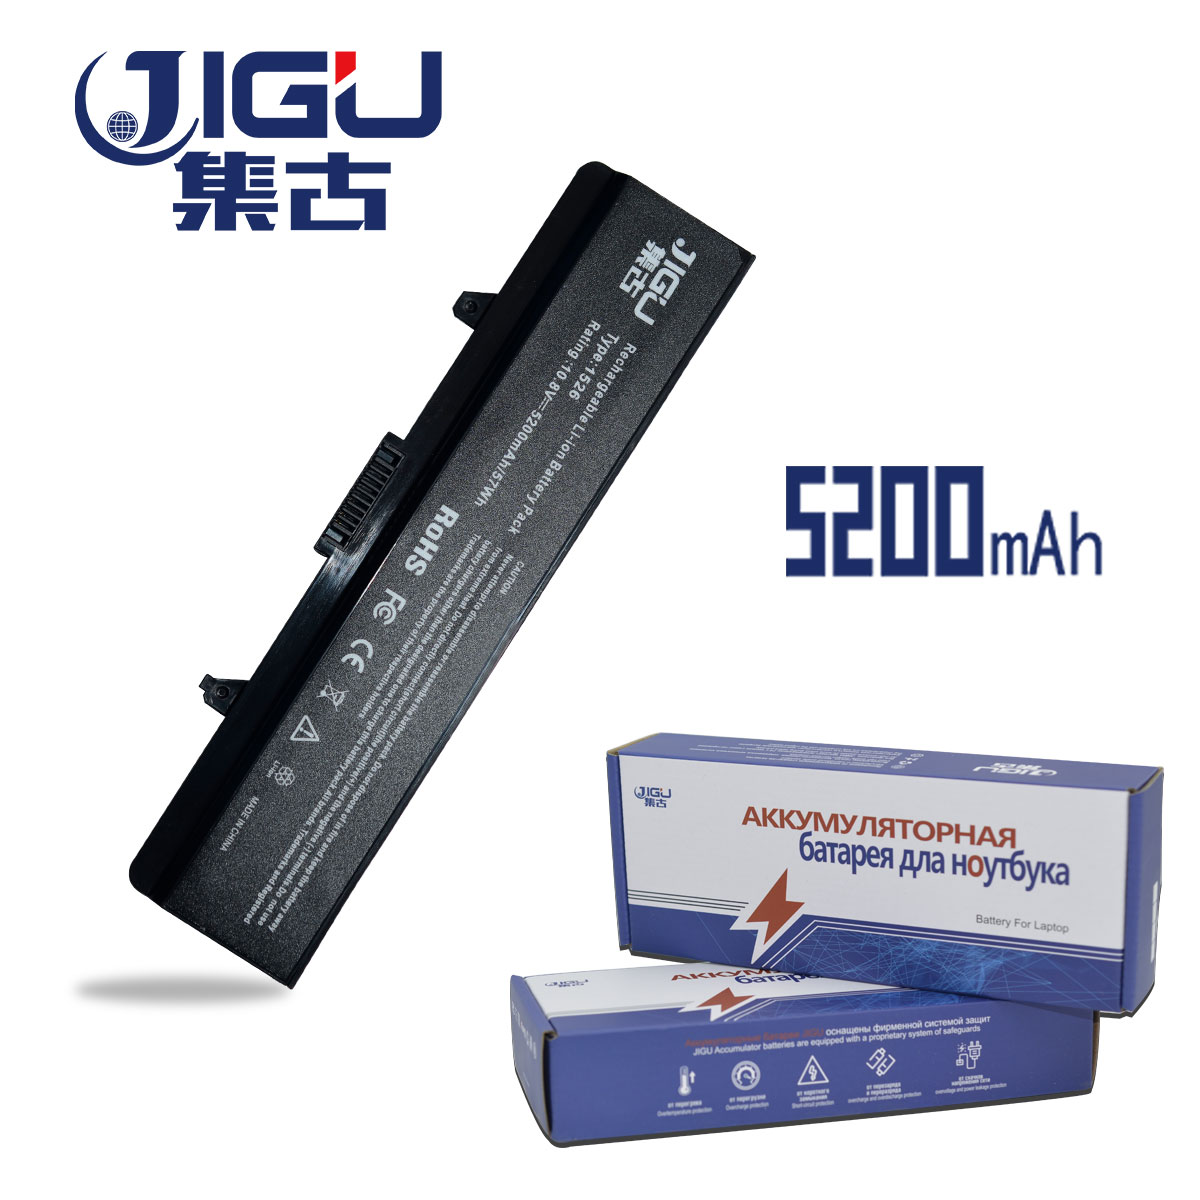 JIGU Laptop Battery FOR Dell GW240 297 M911G RN873 RU586 XR693 For Dell Inspiron 1525 1526 1545 Notebook Battery X284g